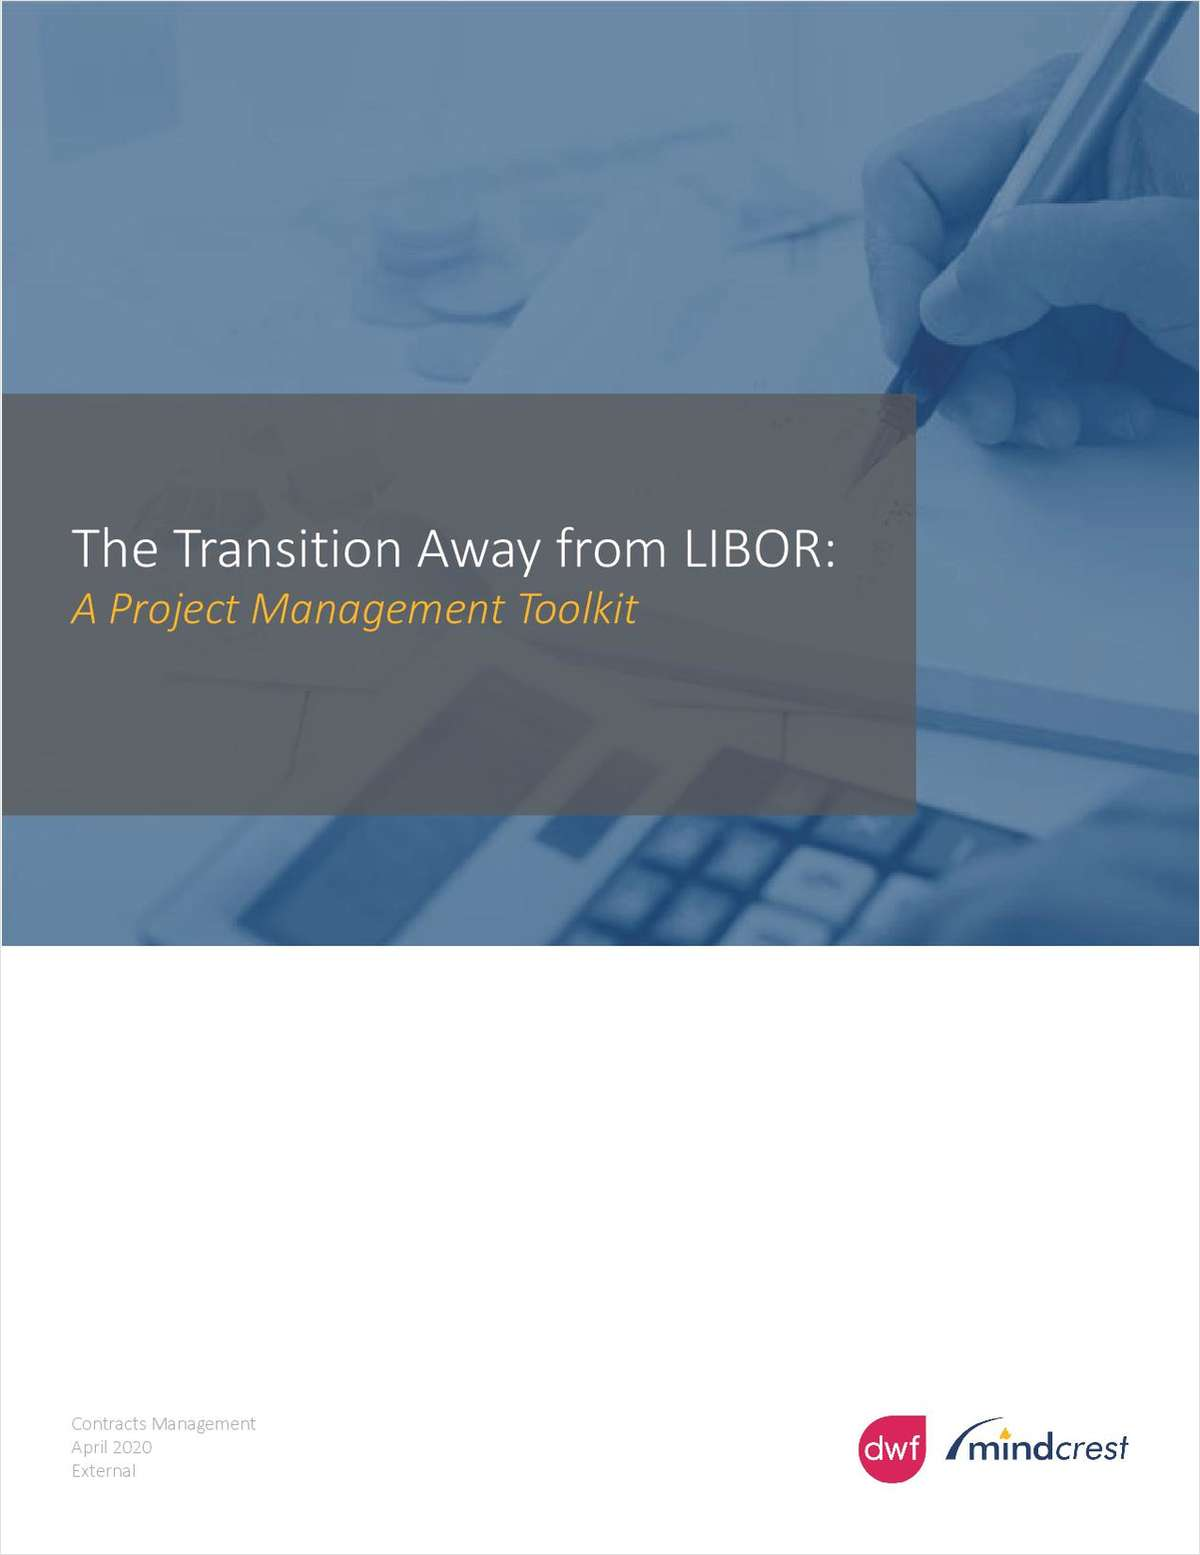 The Transition Away from Libor: A Project Management Toolkit